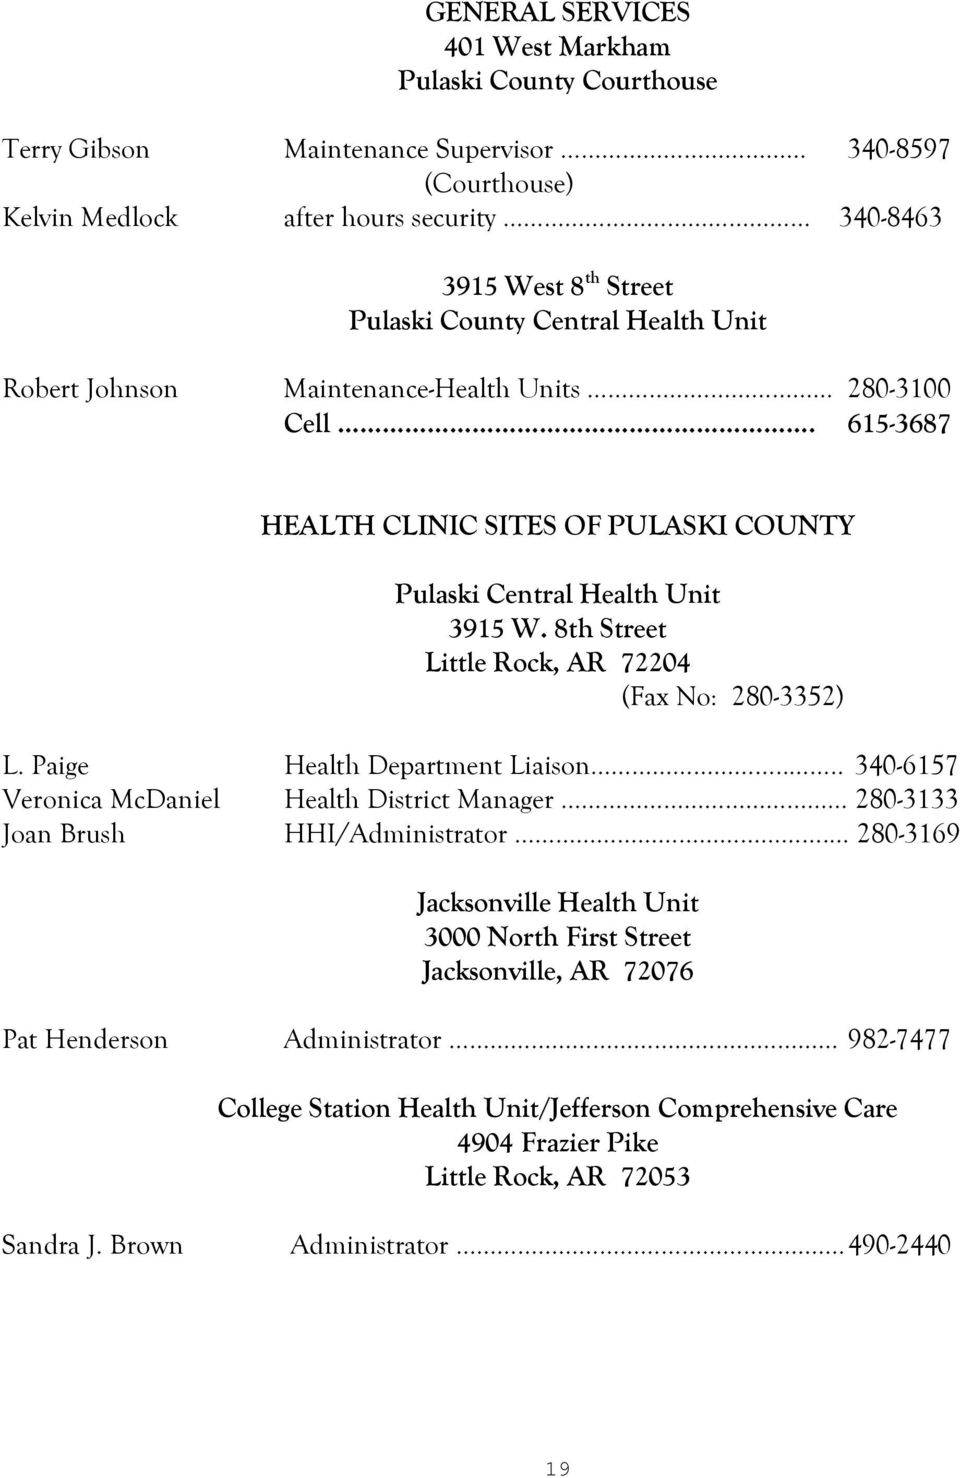 8th Street Little Rock, AR 72204 (Fax No: 280-3352) L. Paige Health Department Liaison.... 340-6157 Veronica McDaniel Health District Manager 280-3133 Joan Brush HHI/Administrator.